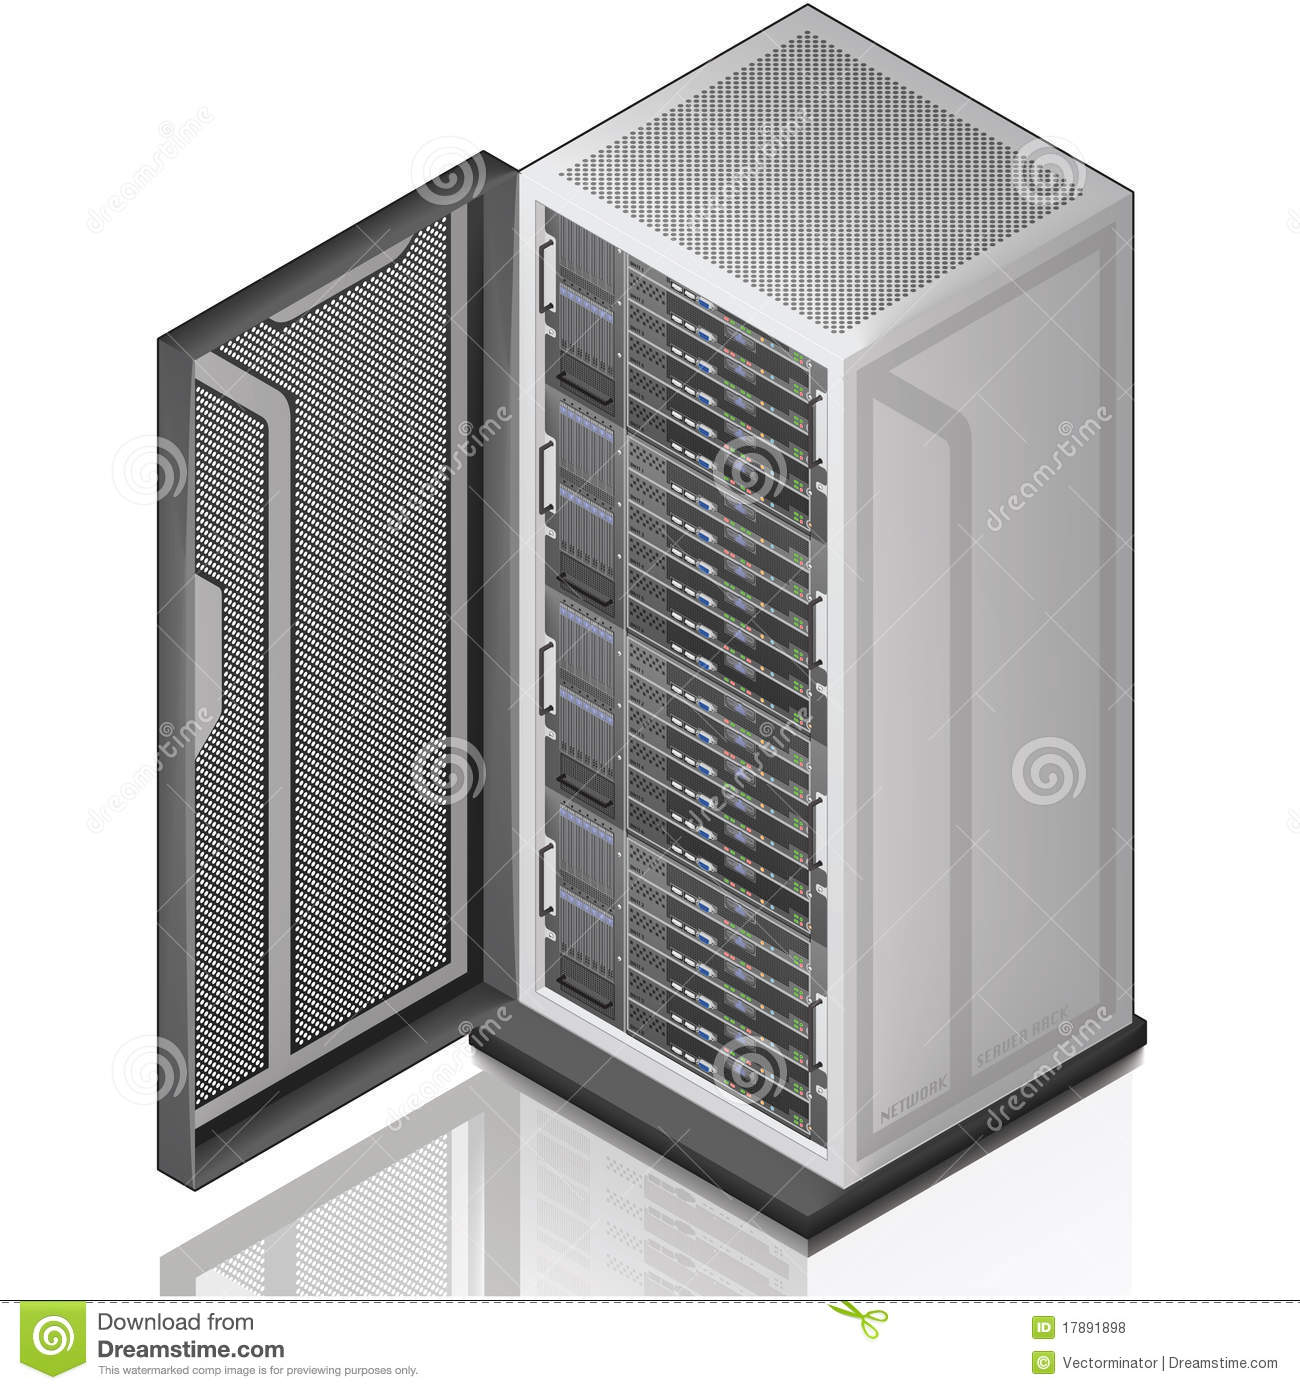 computer rack clip art - photo #12